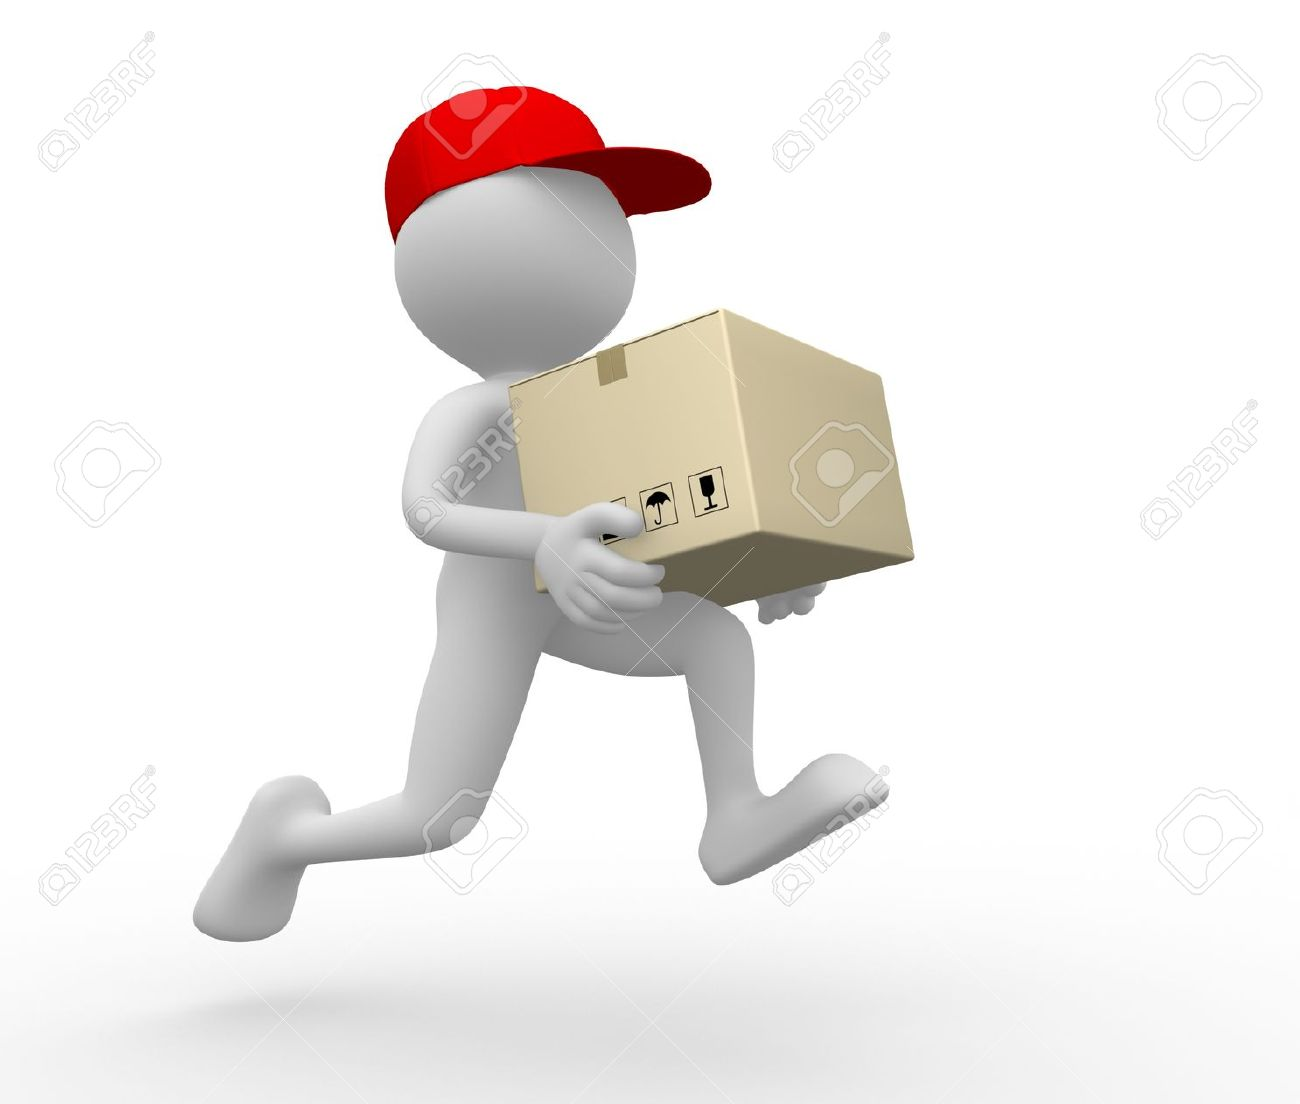 Delivery person clipart clipart freeuse library parcel-clipart-delivery-person-18 - Spotted Sheep clipart freeuse library